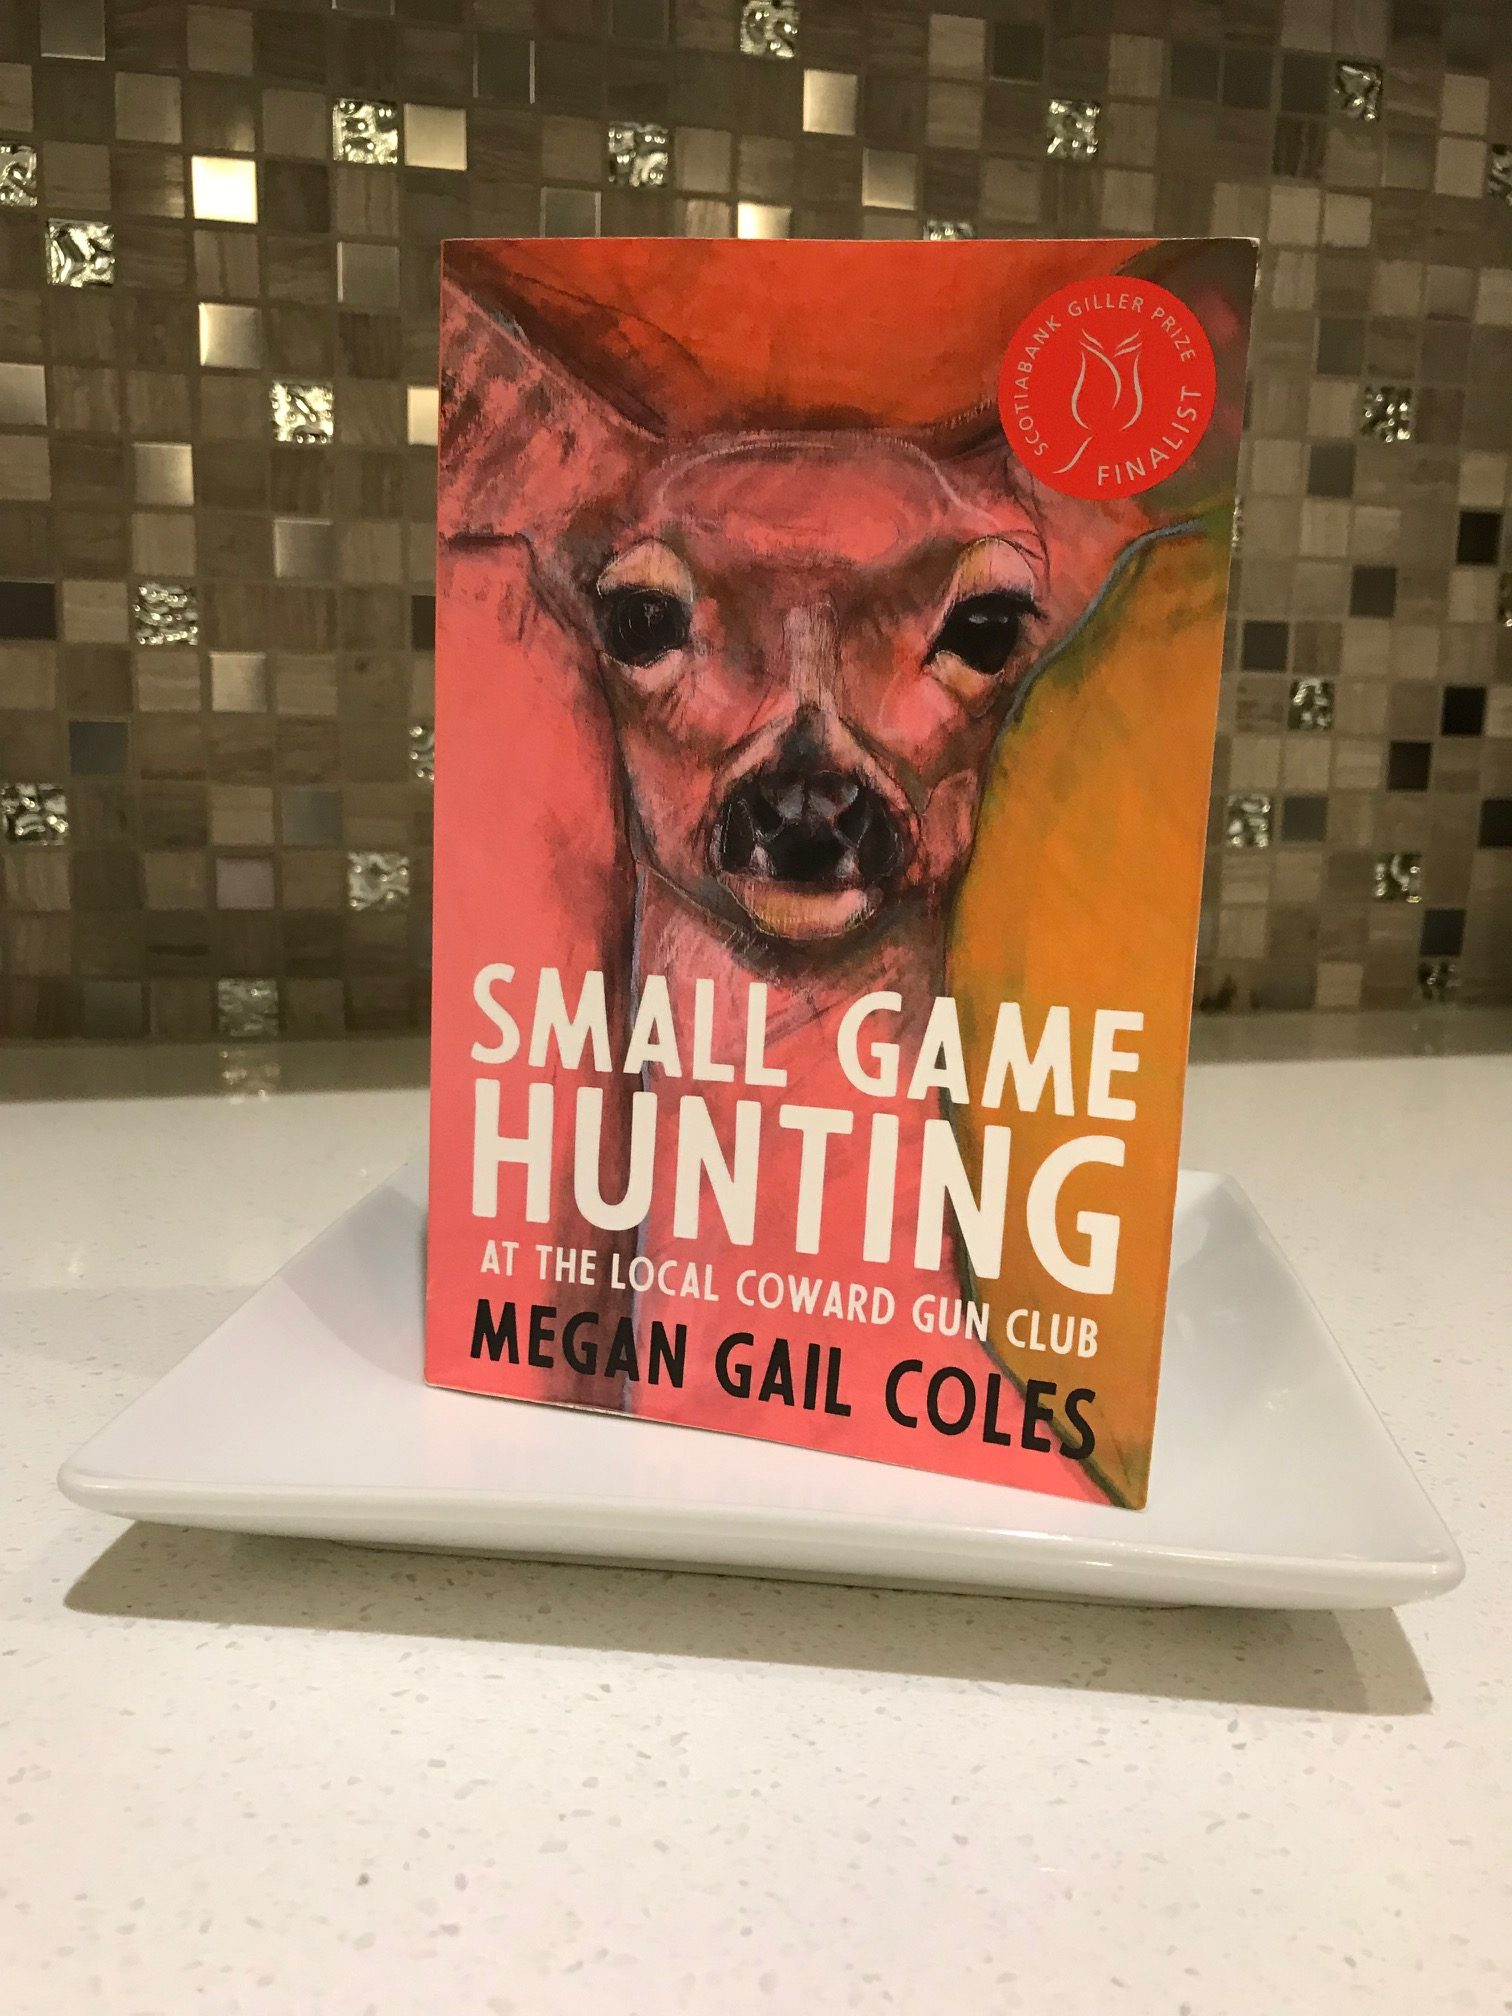 Book Review: Small Game Hunting At the Local Coward Gun Club by Megan Gail Coles